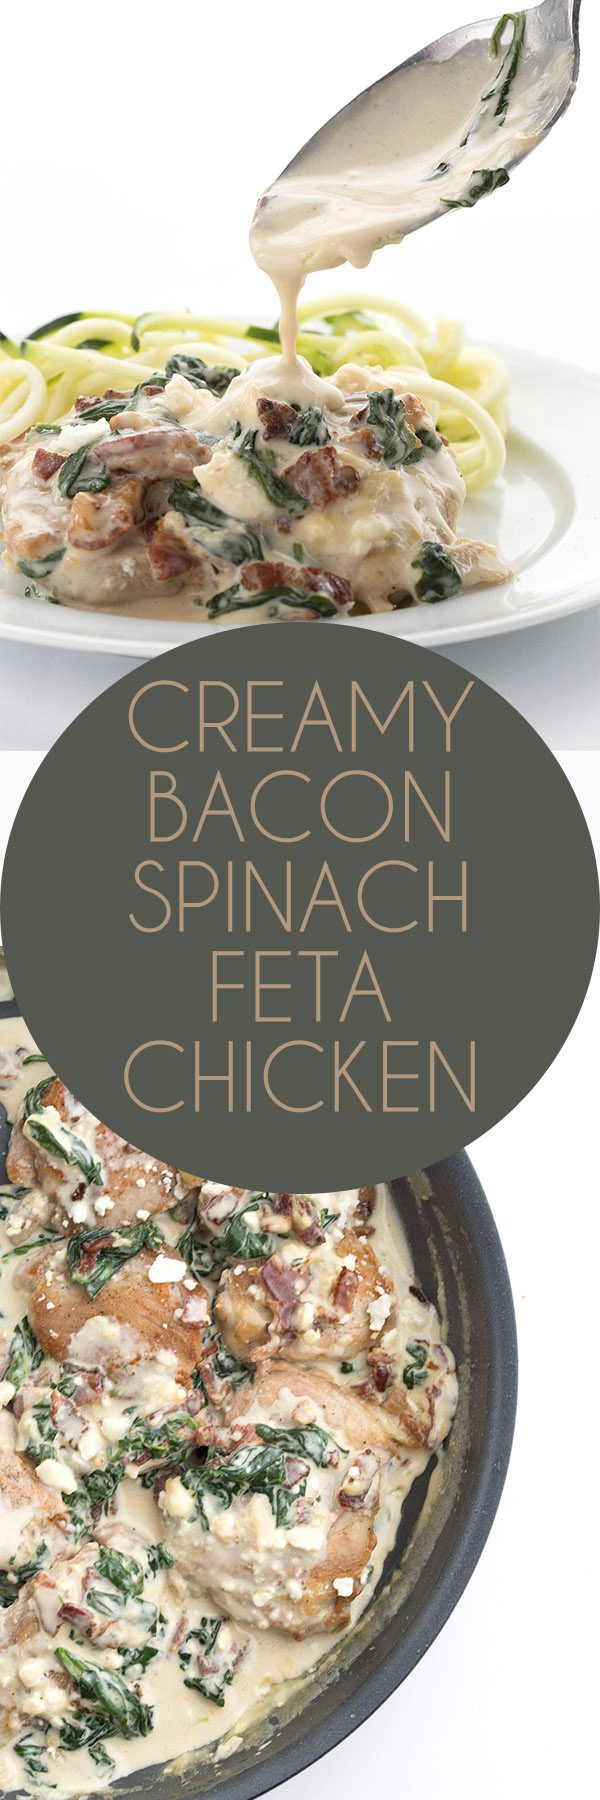 This easy keto skillet chicken recipe will knock your socks off. So creamy and delicious, with bacon, spinach, and feta. Serve over zucchini noodles for the ultimate low carb dinner.